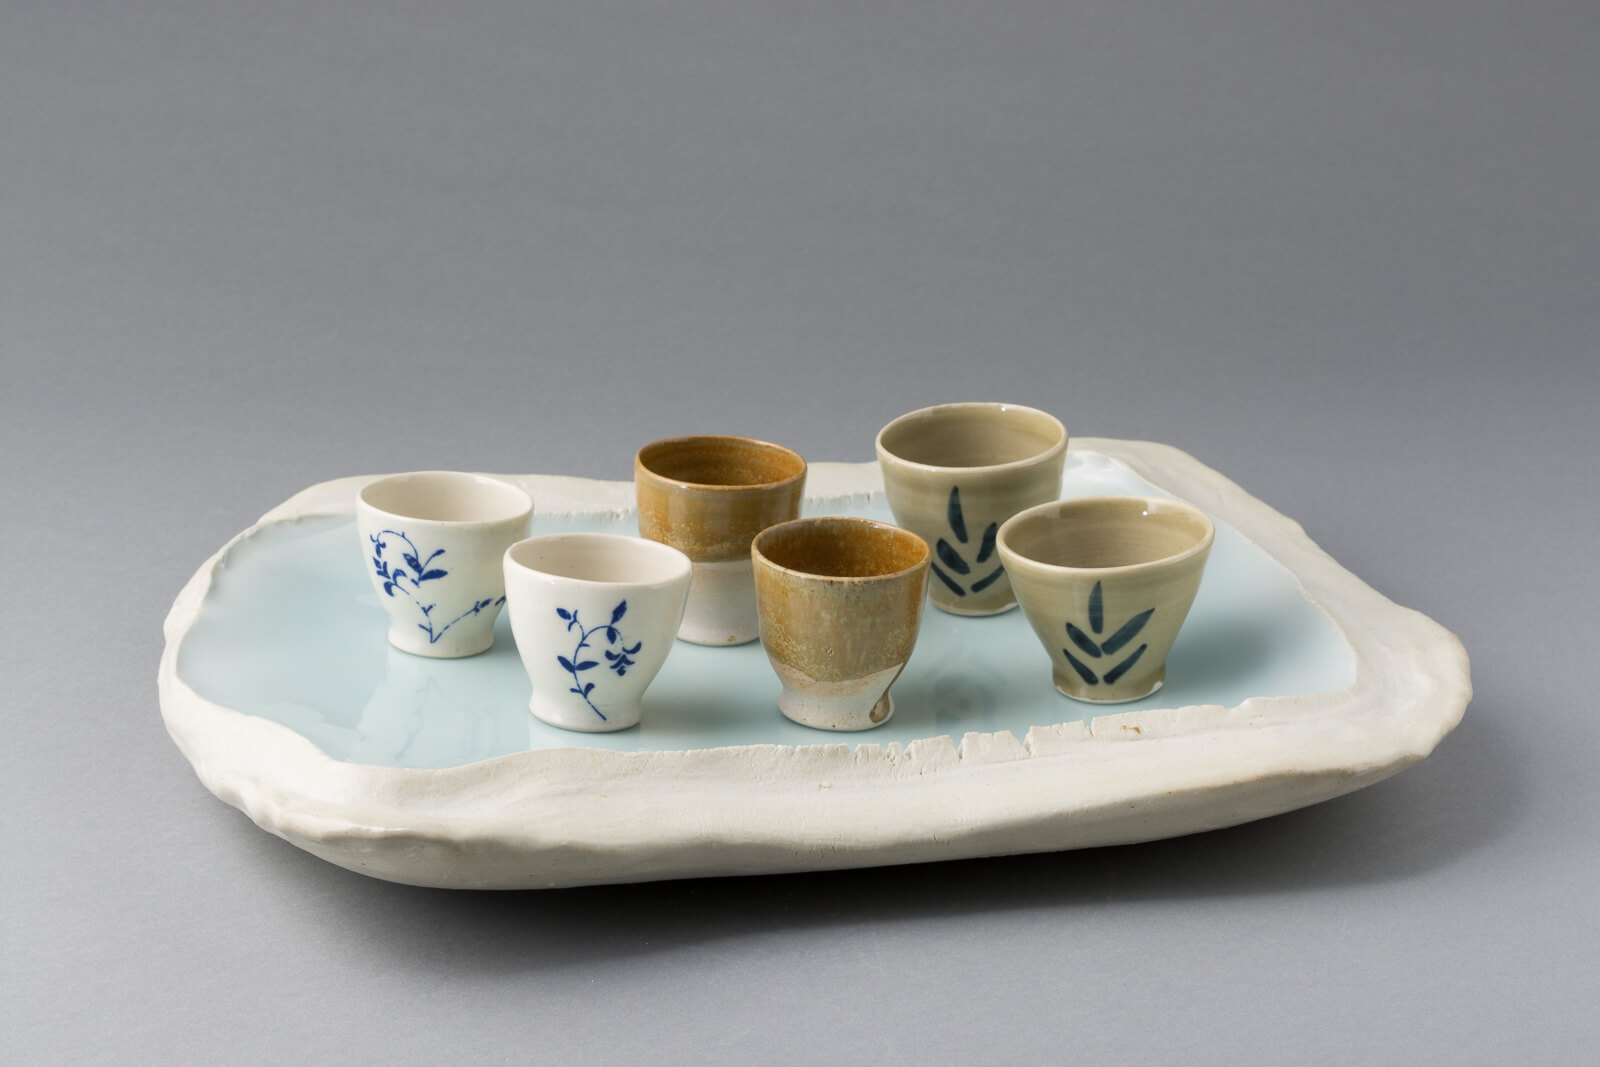 tea cups and tray, porcelain